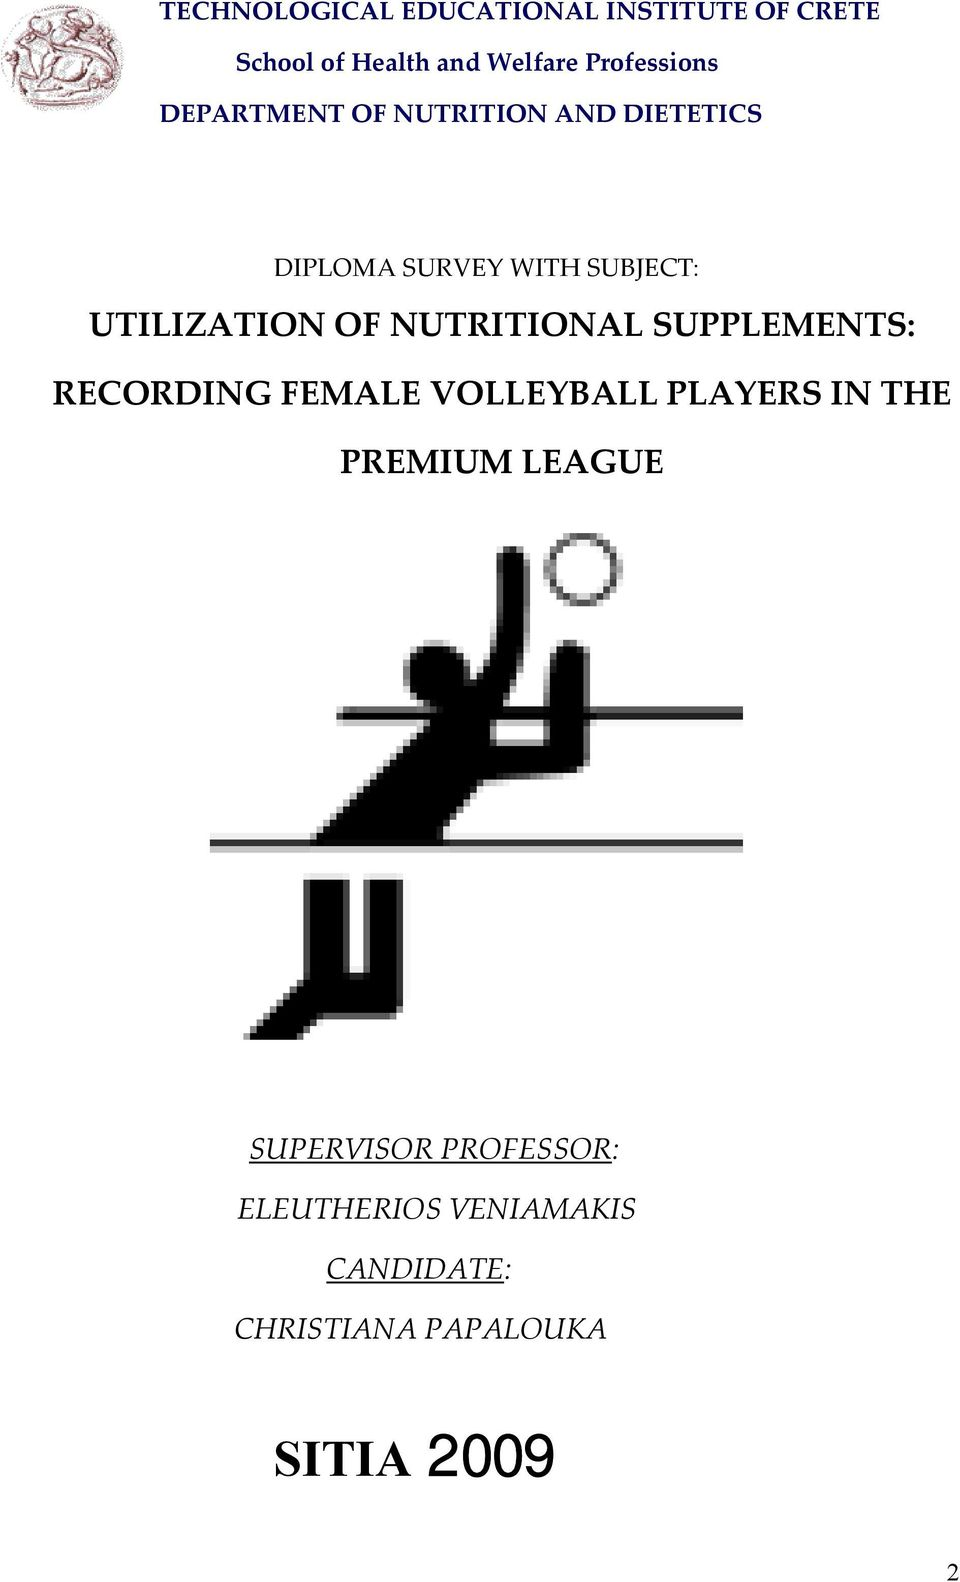 UTILIZATION OF NUTRITIONAL SUPPLEMENTS: RECORDING FEMALE VOLLEYBALL PLAYERS IN THE